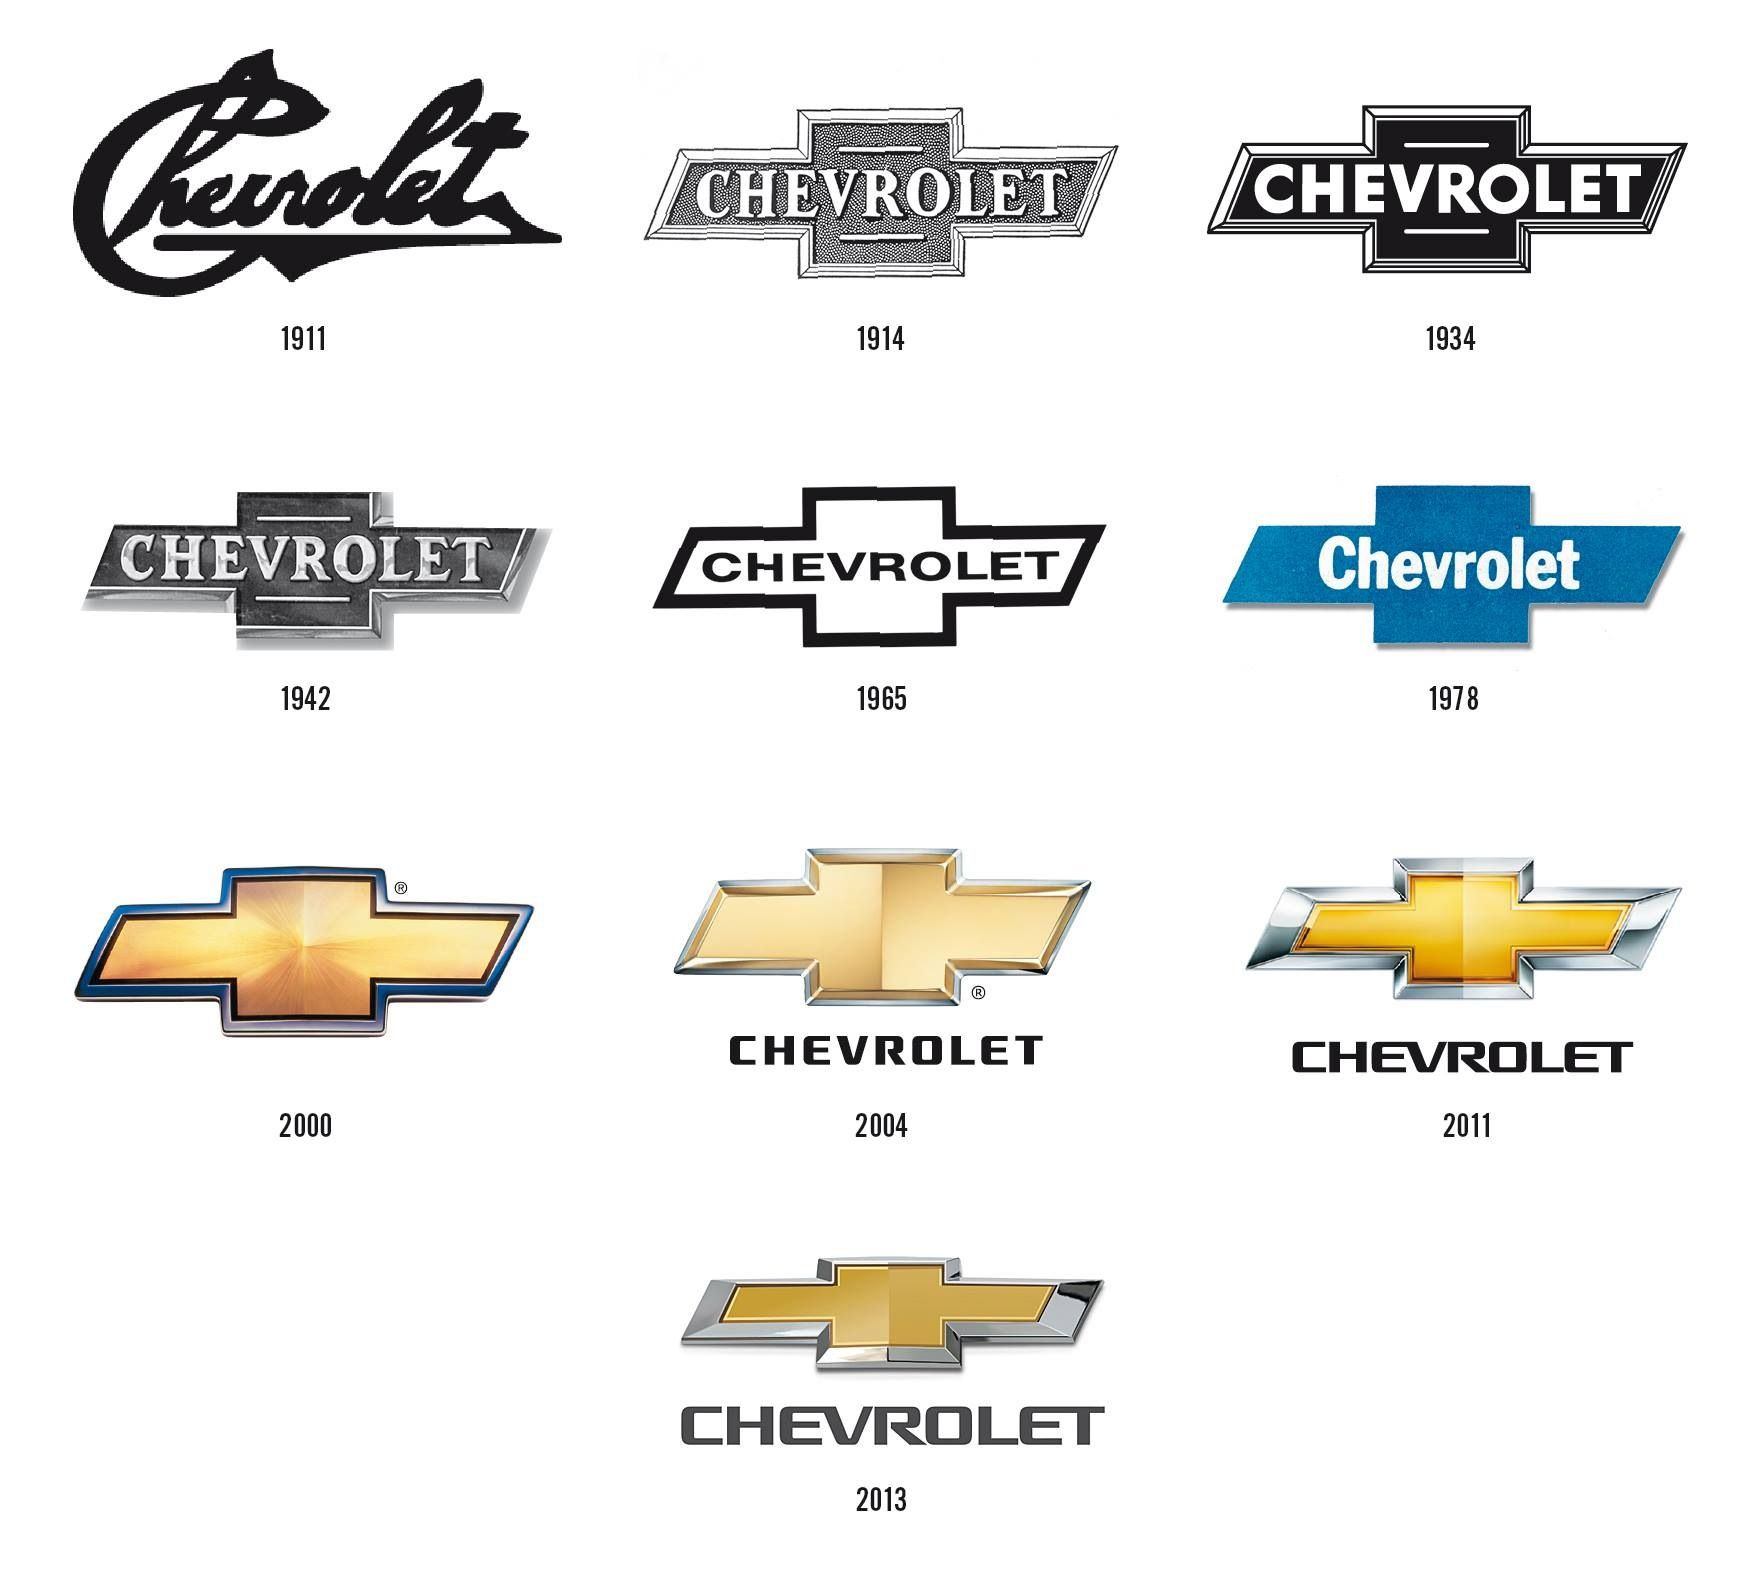 Dave Smith Motors started out as a Chevrolet dealership in